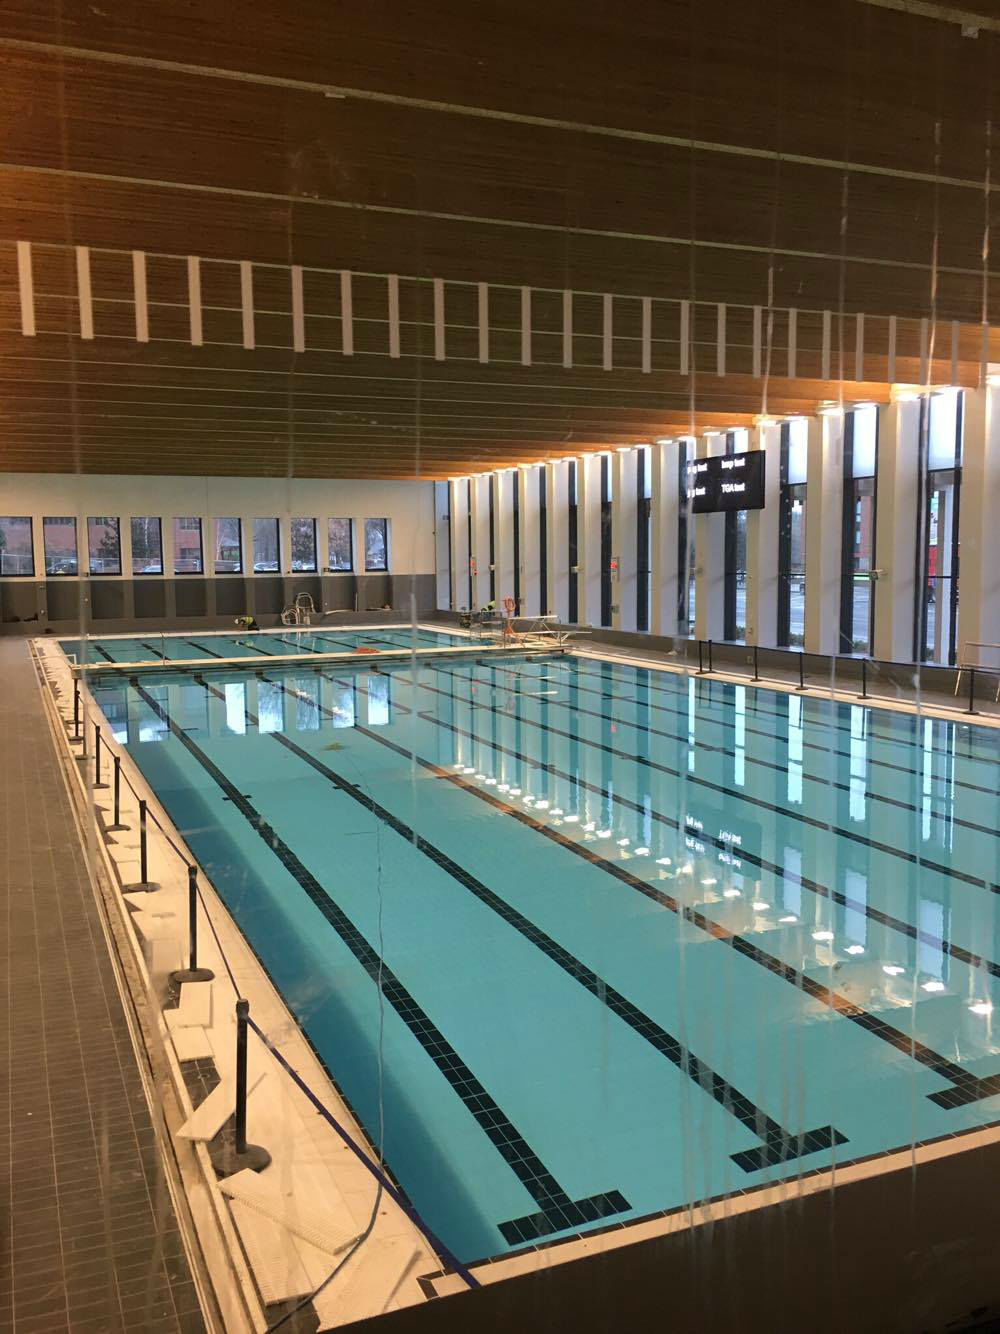 Fit for purpose university business University of birmingham swimming pool